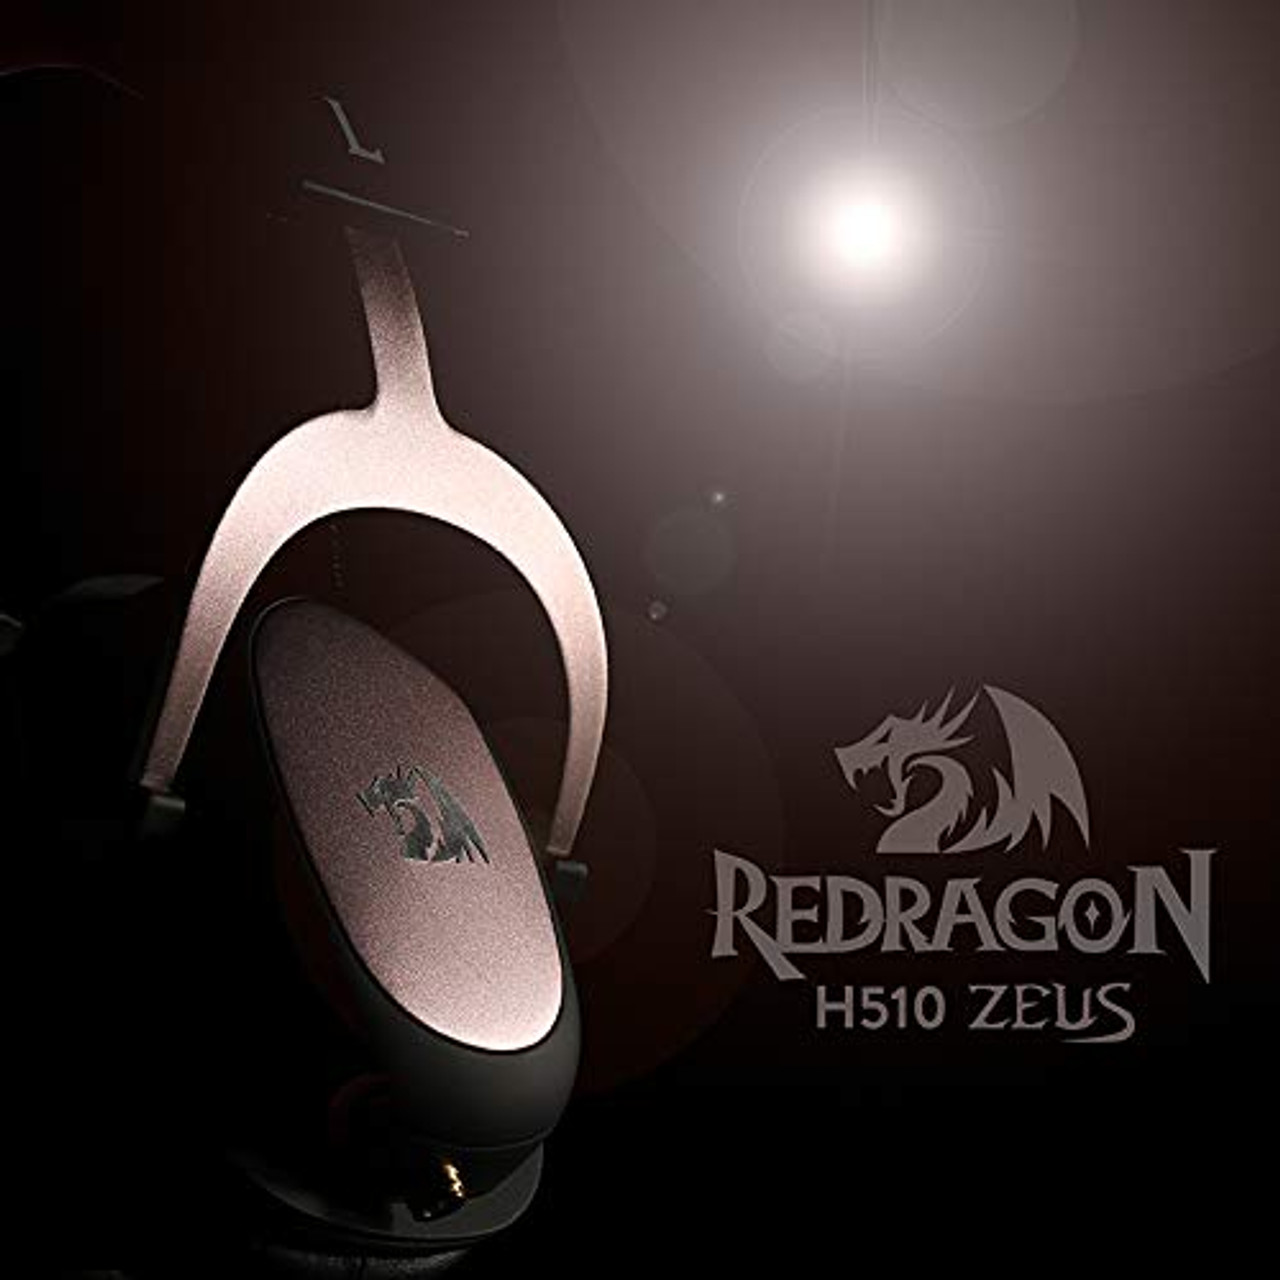 Redragon H510 Zeus Wired Gaming Headset, 7 1 Surround-Sound, 53MM Drivers,  Detachable Microphone - Works with PC/PS4 & Xbox One, Nintendo Switch